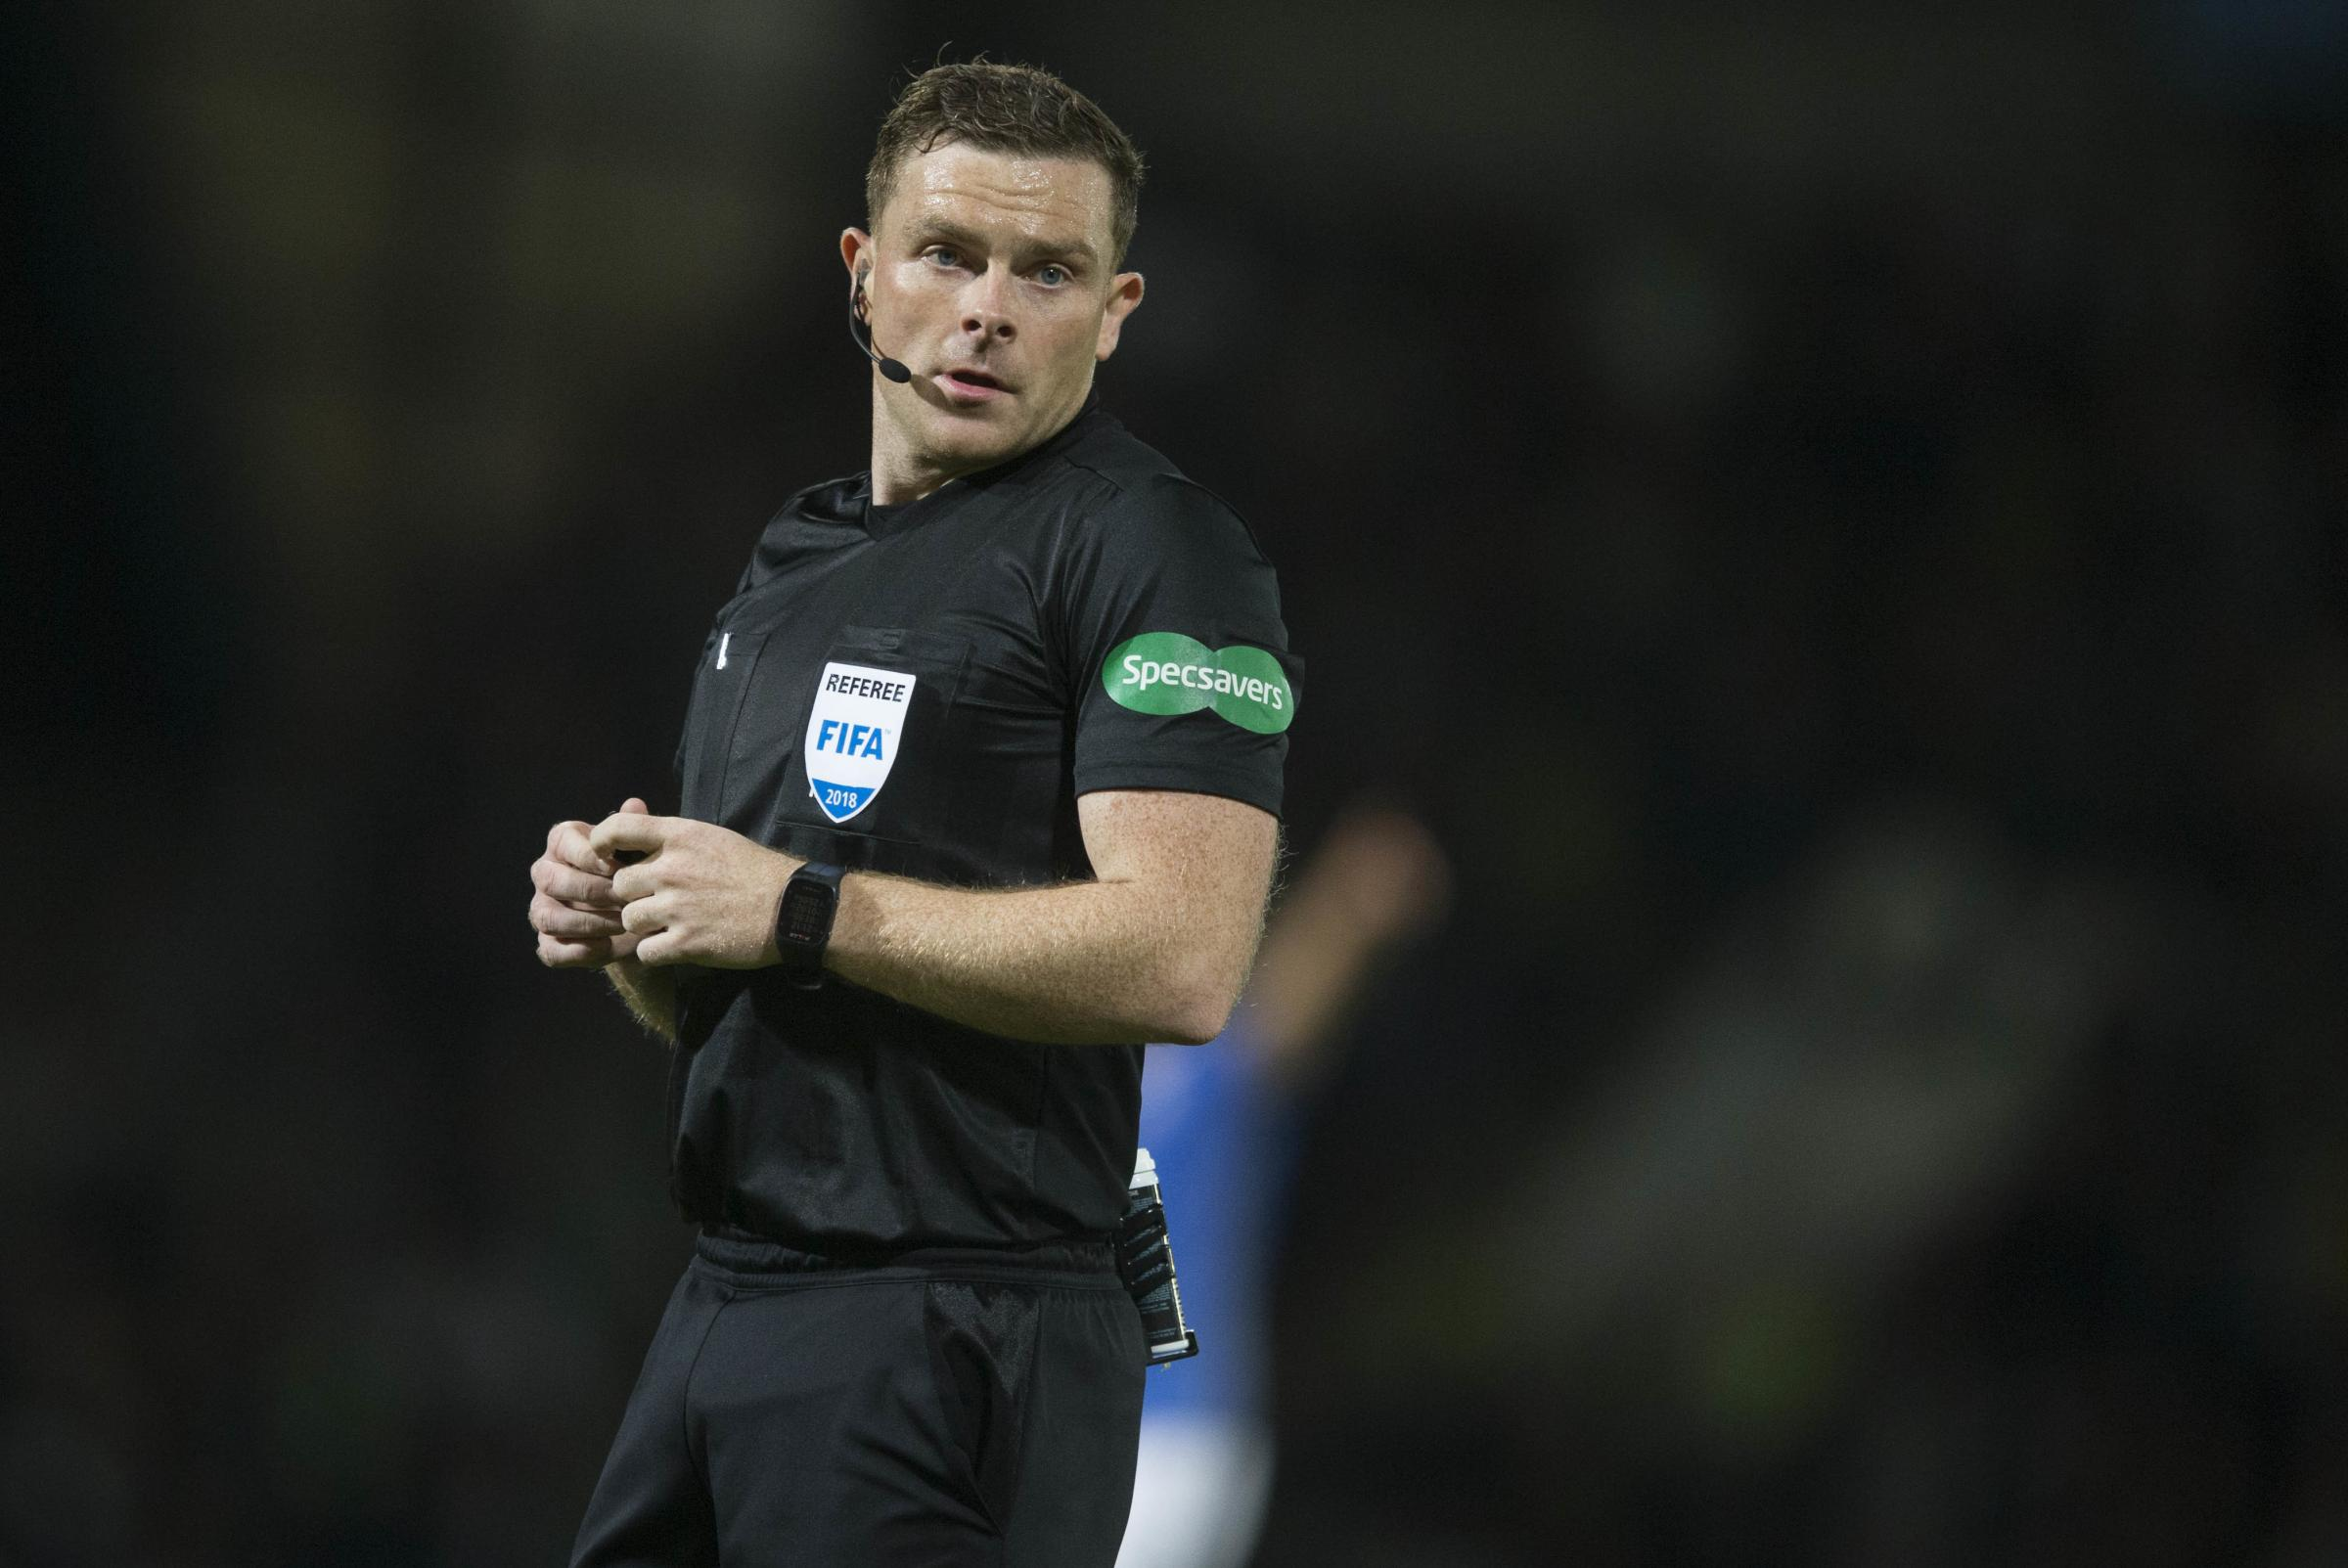 Davie Hay: I don't care if referees are full-time or part-time, we just need good refs